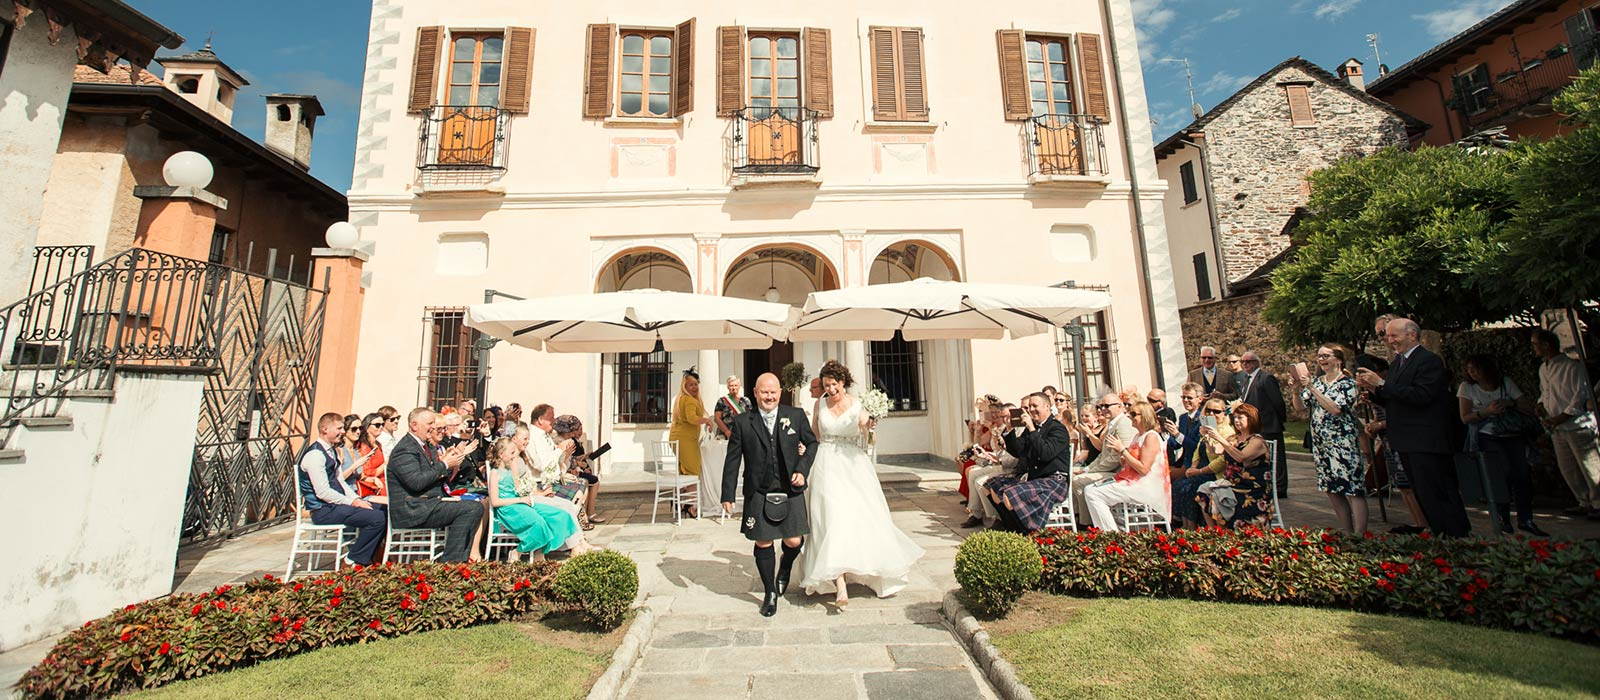 Civil wedding ceremony at Villa Bossi, lake Orta